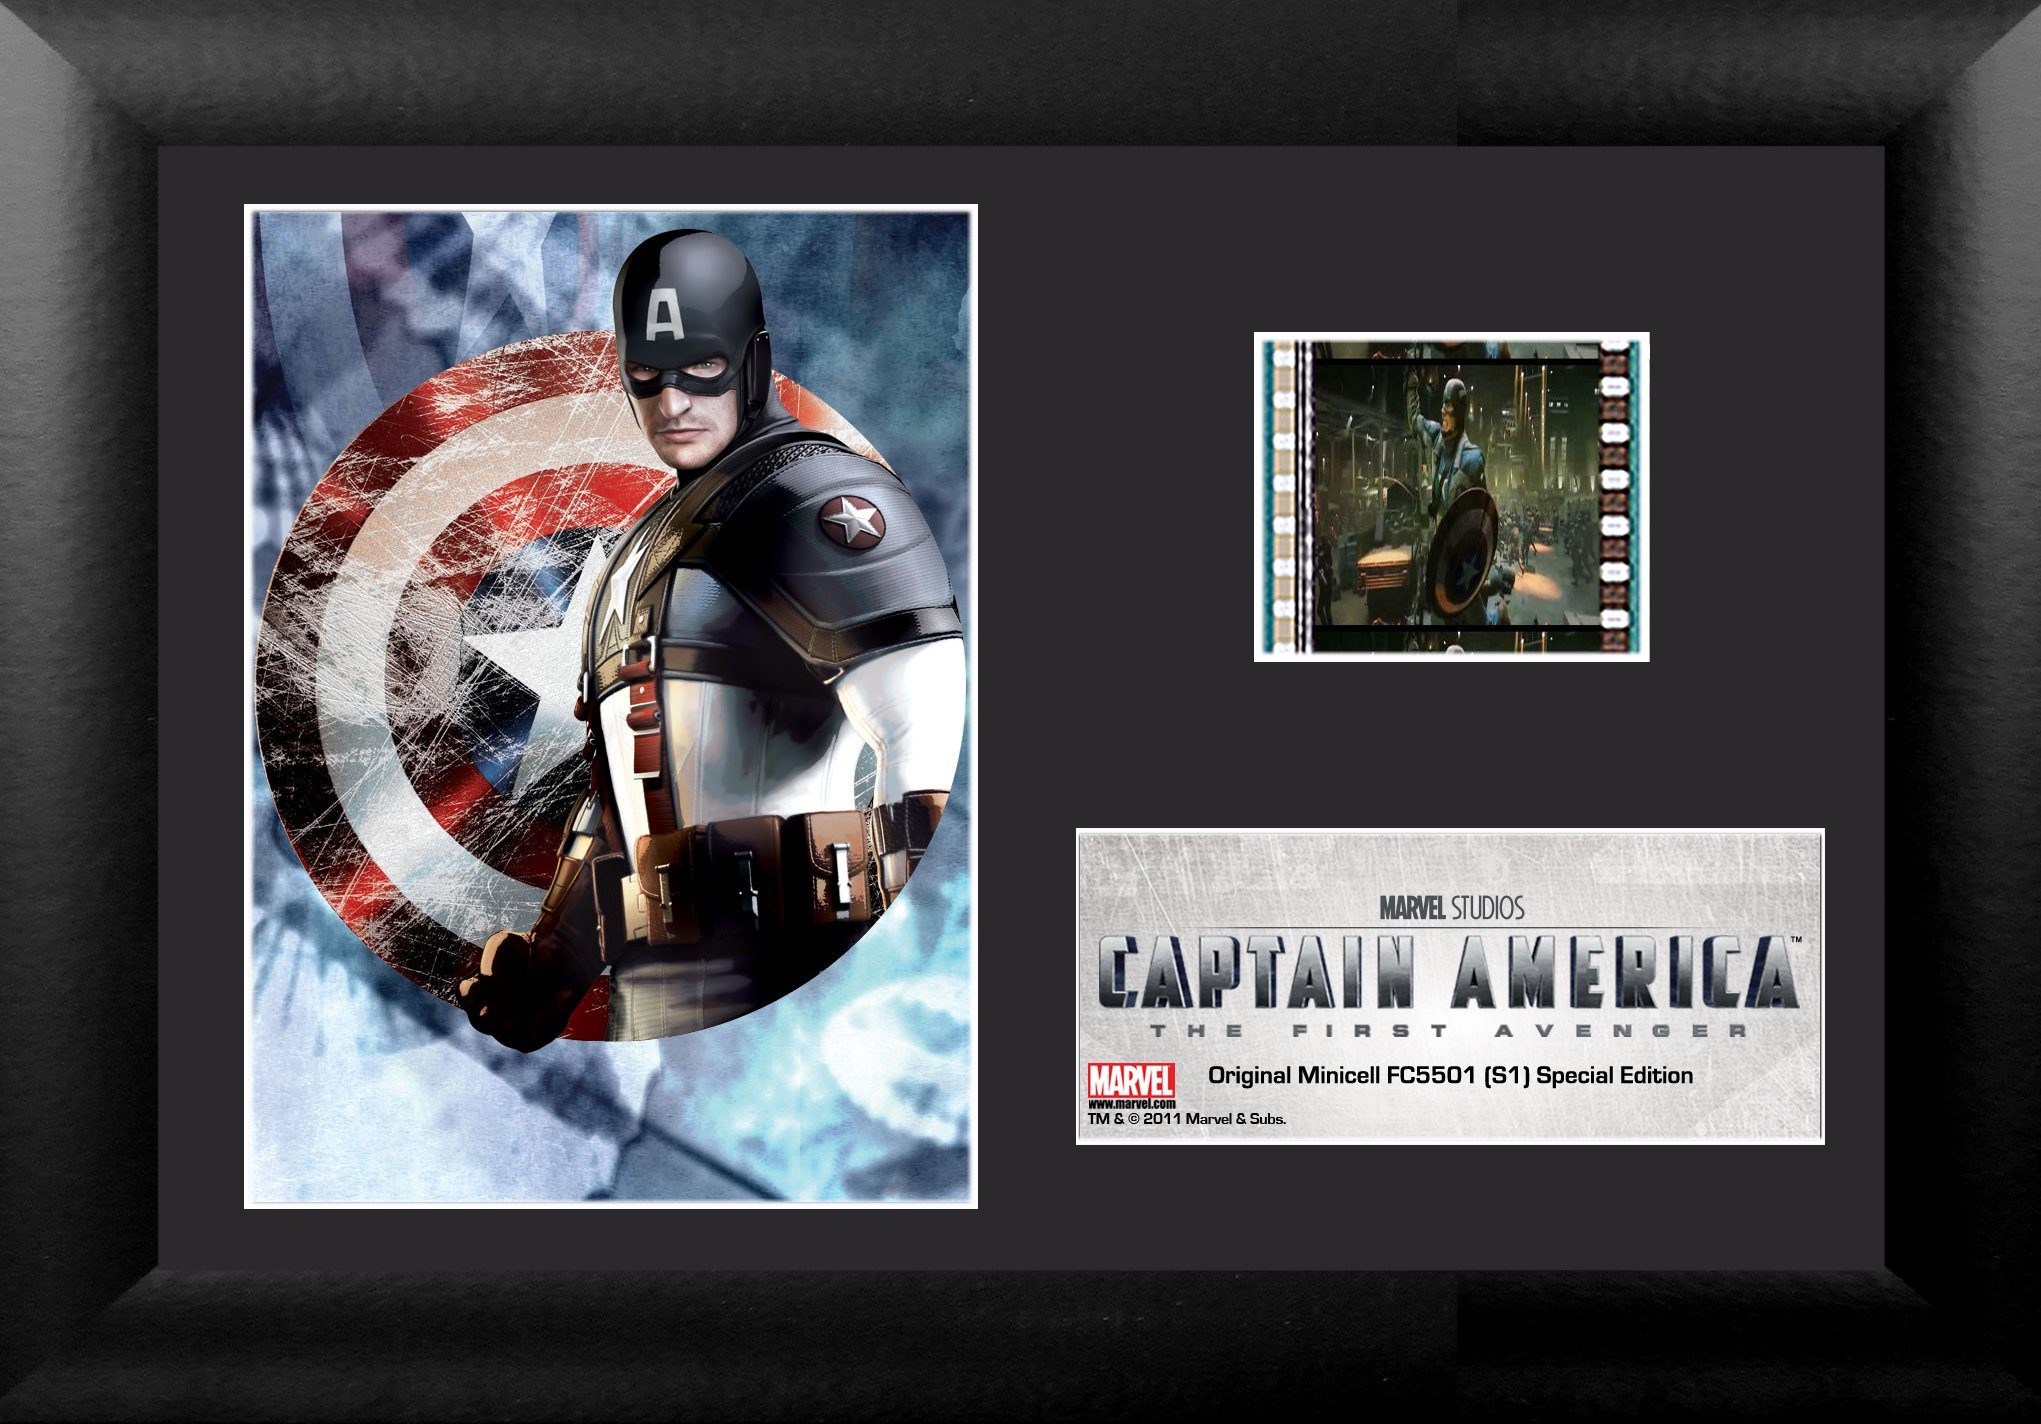 Trend Setters Ltd Captain America The First Avenger S1 Minicell Film Cell